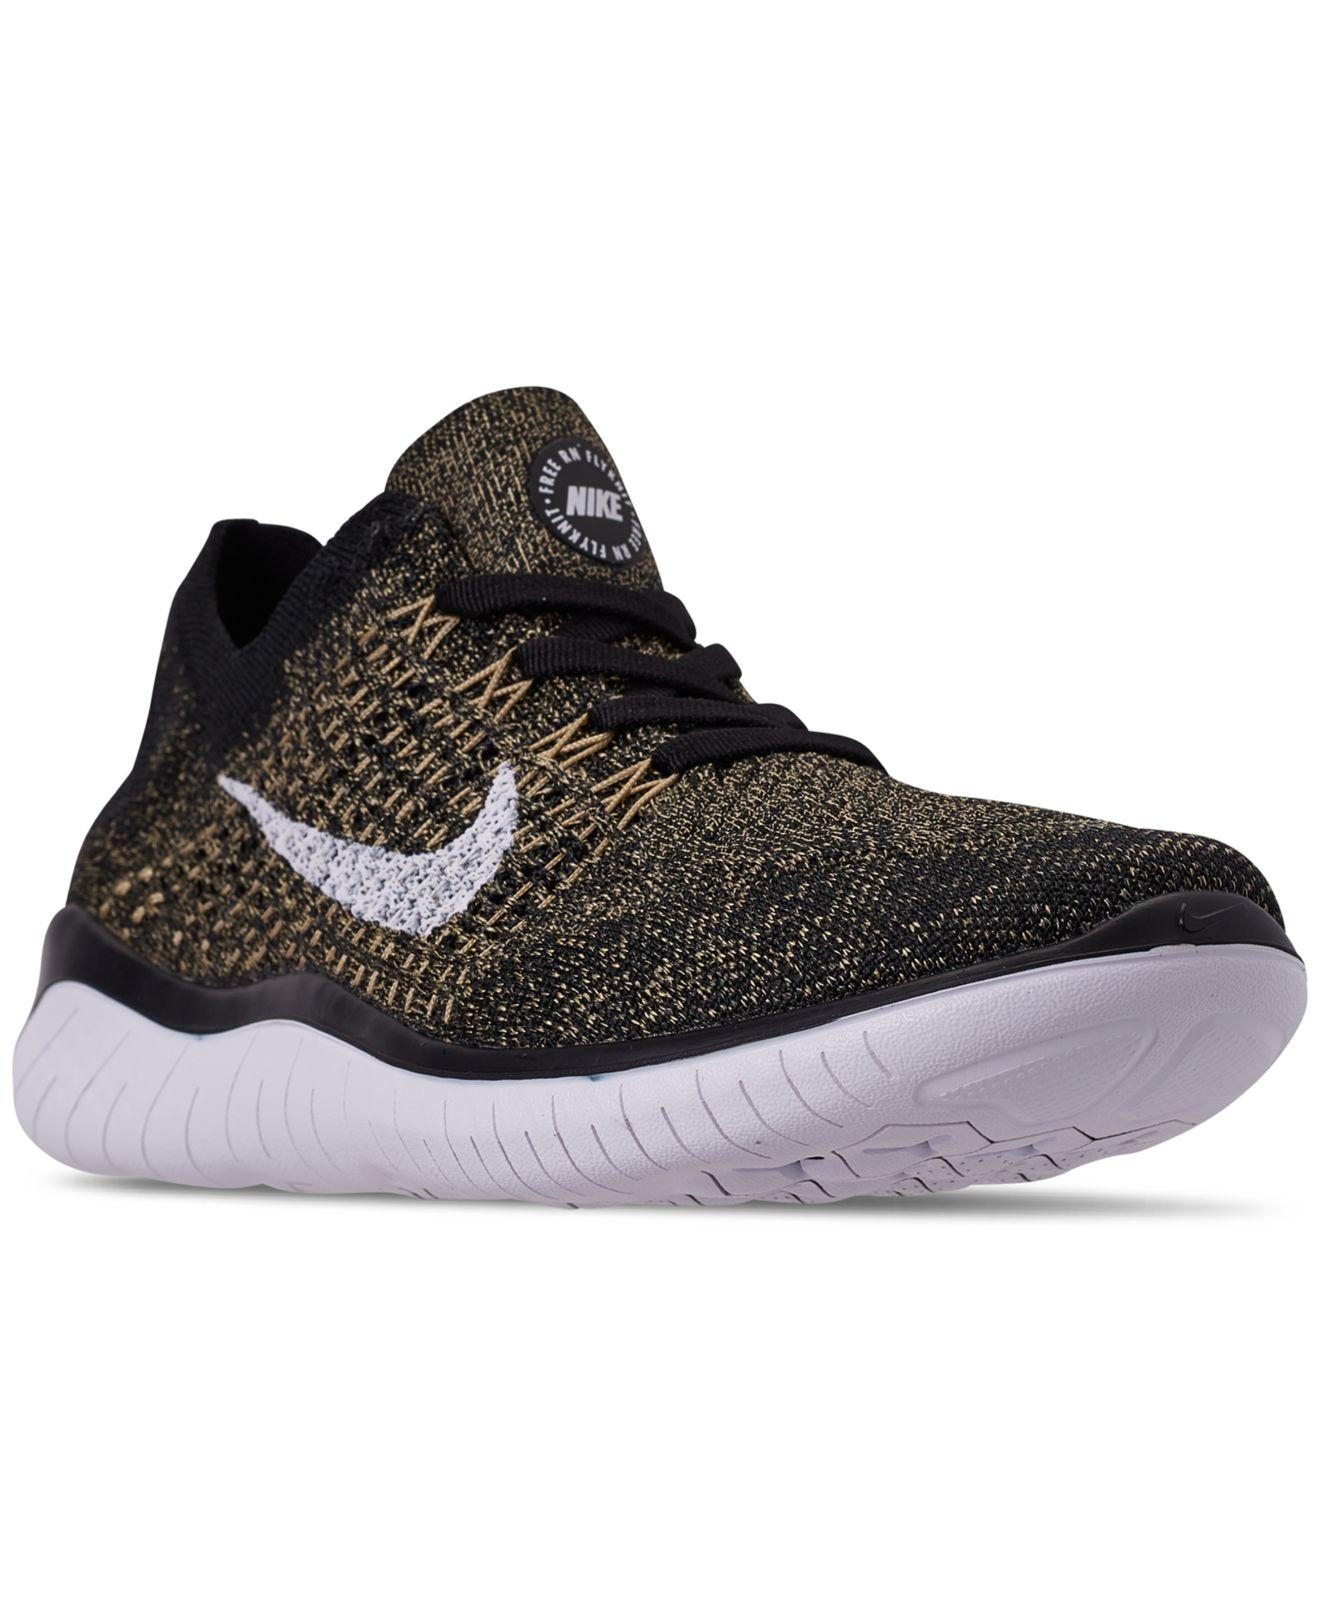 6937812992df5 Nike. Men s Black Free Rn Flyknit 2018 Running Sneakers From Finish Line